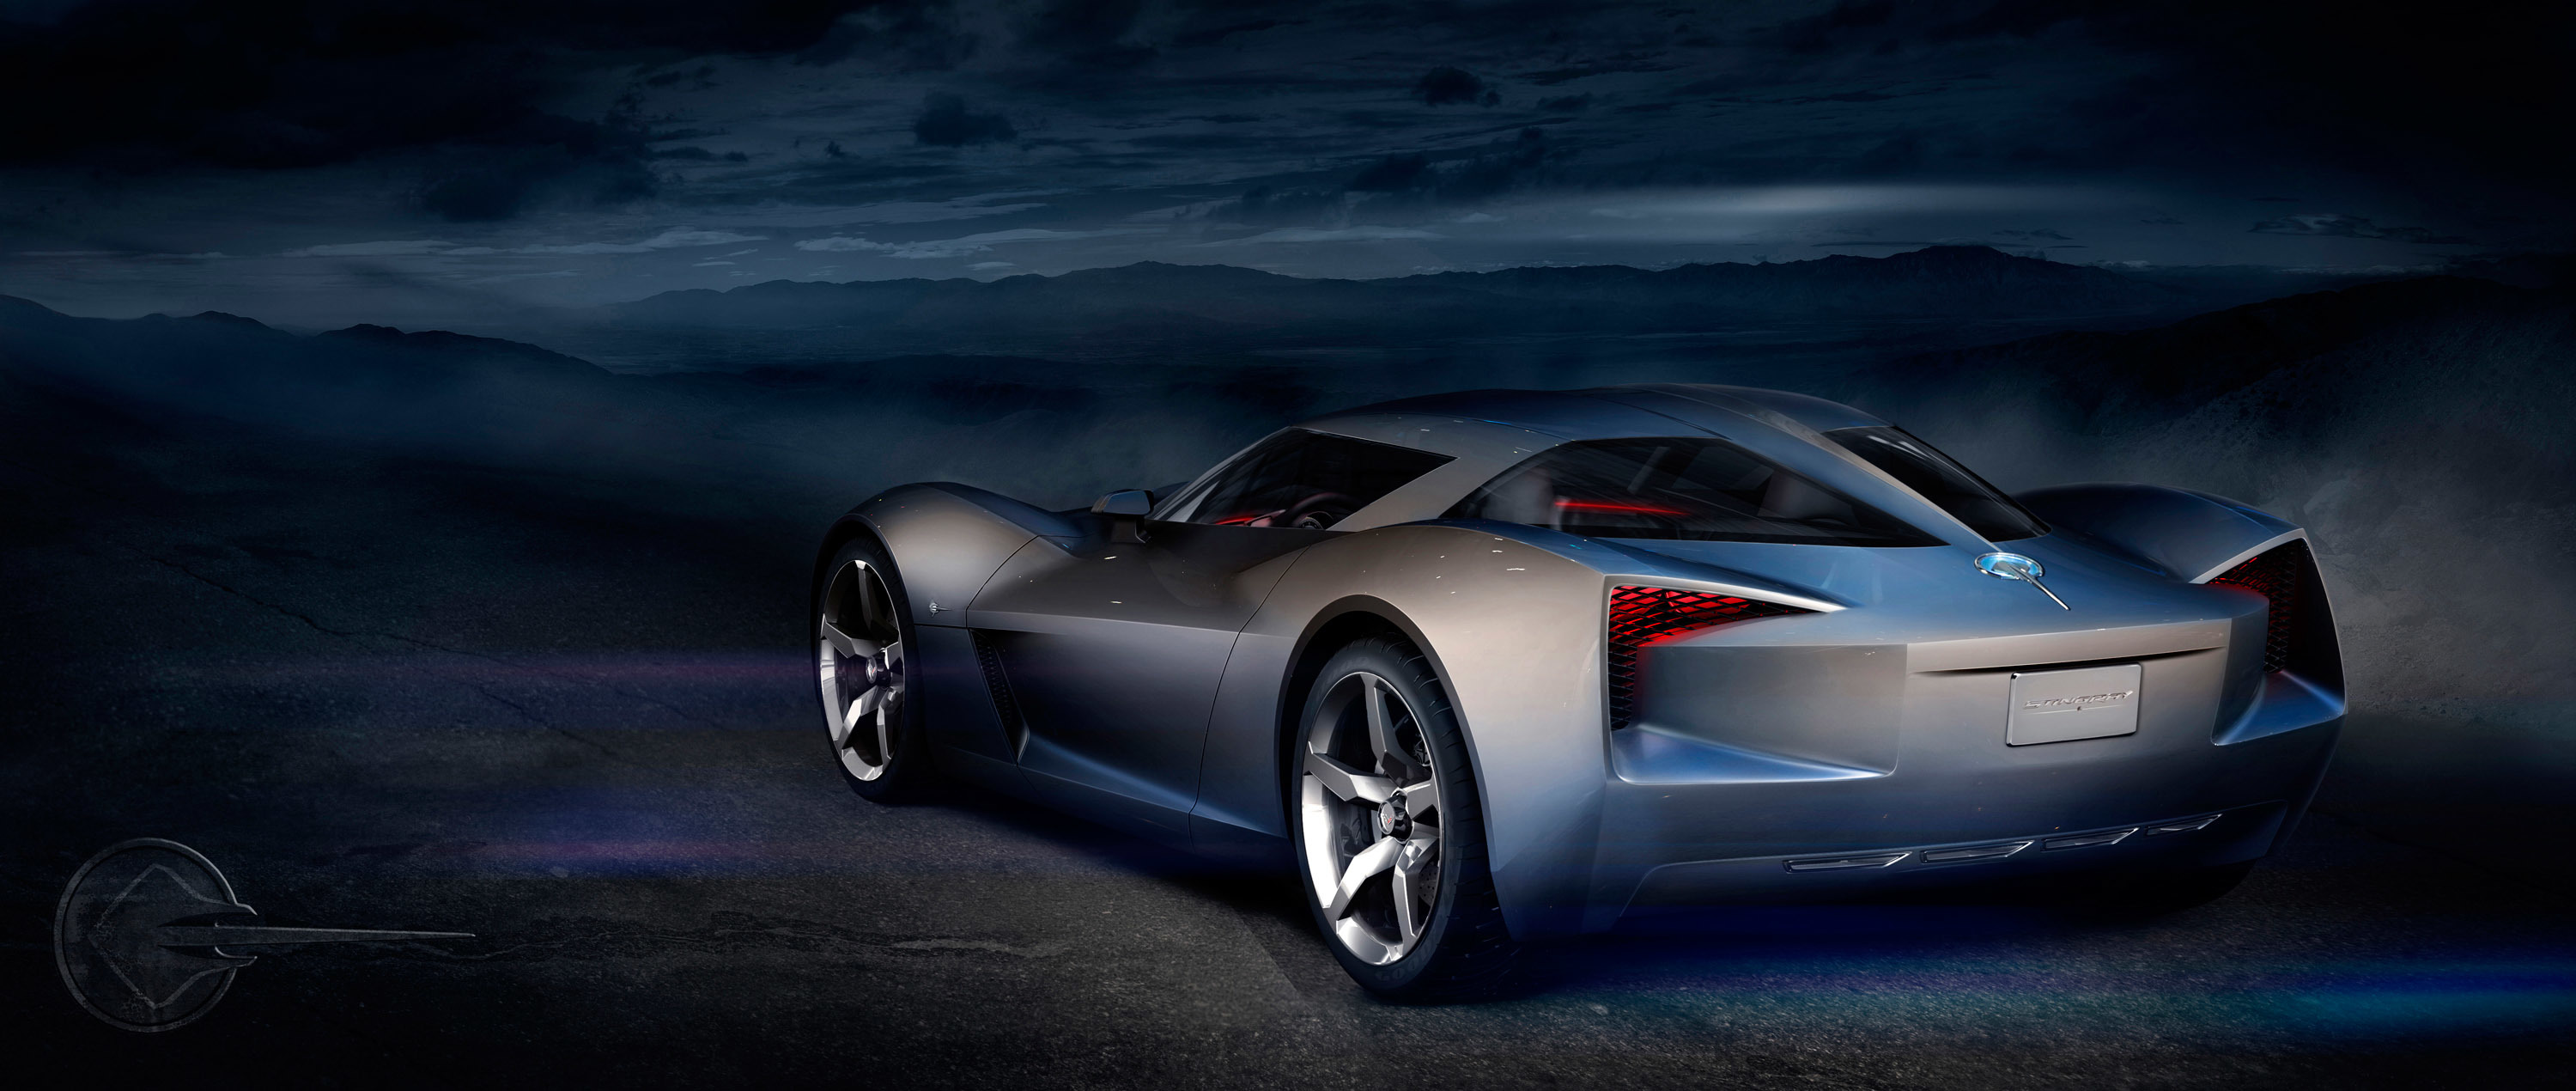 Corvette Stingray Wallpaper on Chevrolet Corvette Stingray Concept 18 High Resolution Hd Wallpaper